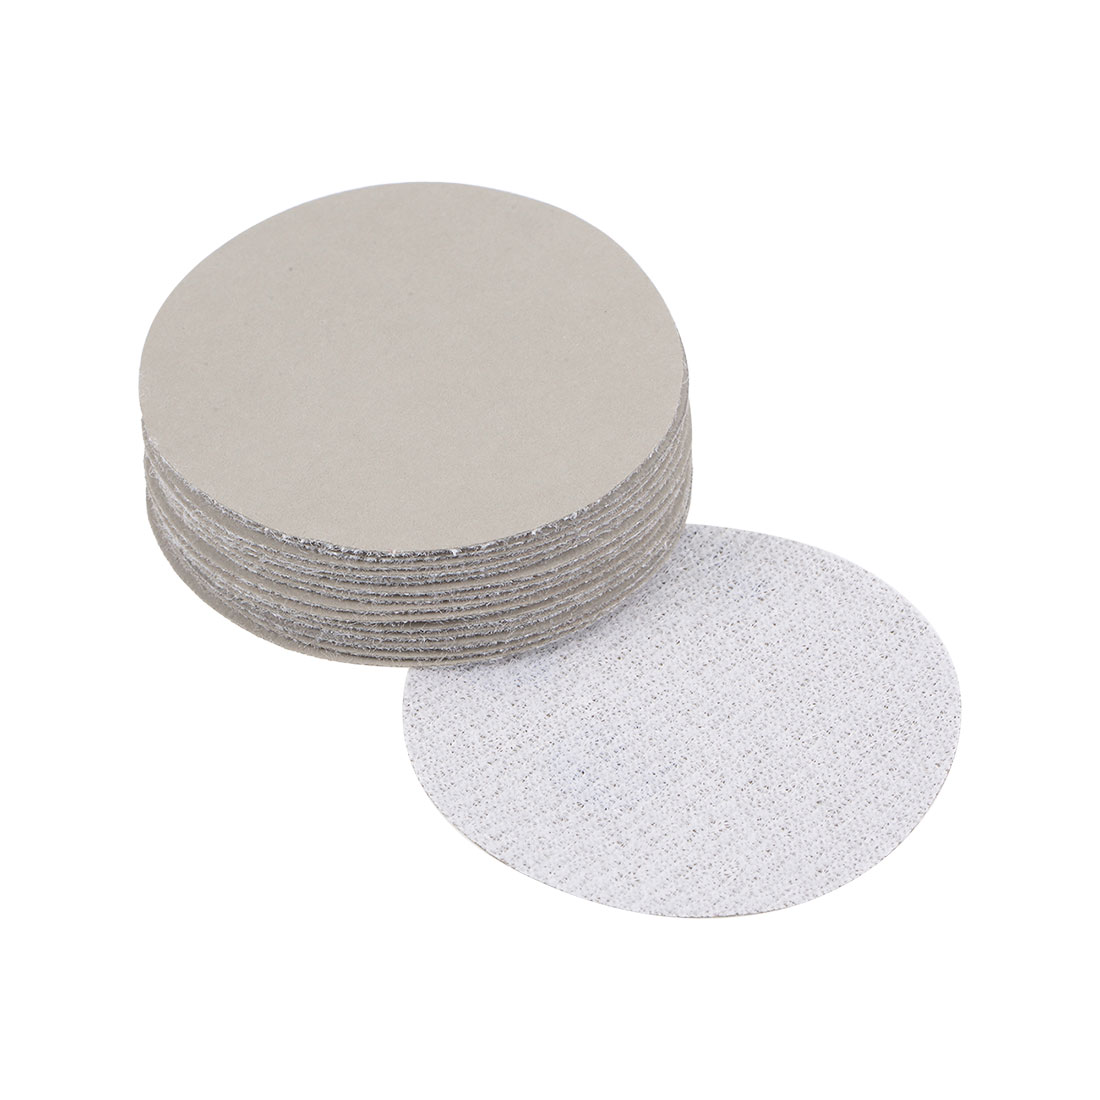 2 inch Wet Dry Discs 4000 Grit Hook and Loop Sanding Disc Silicon Carbide 15pcs